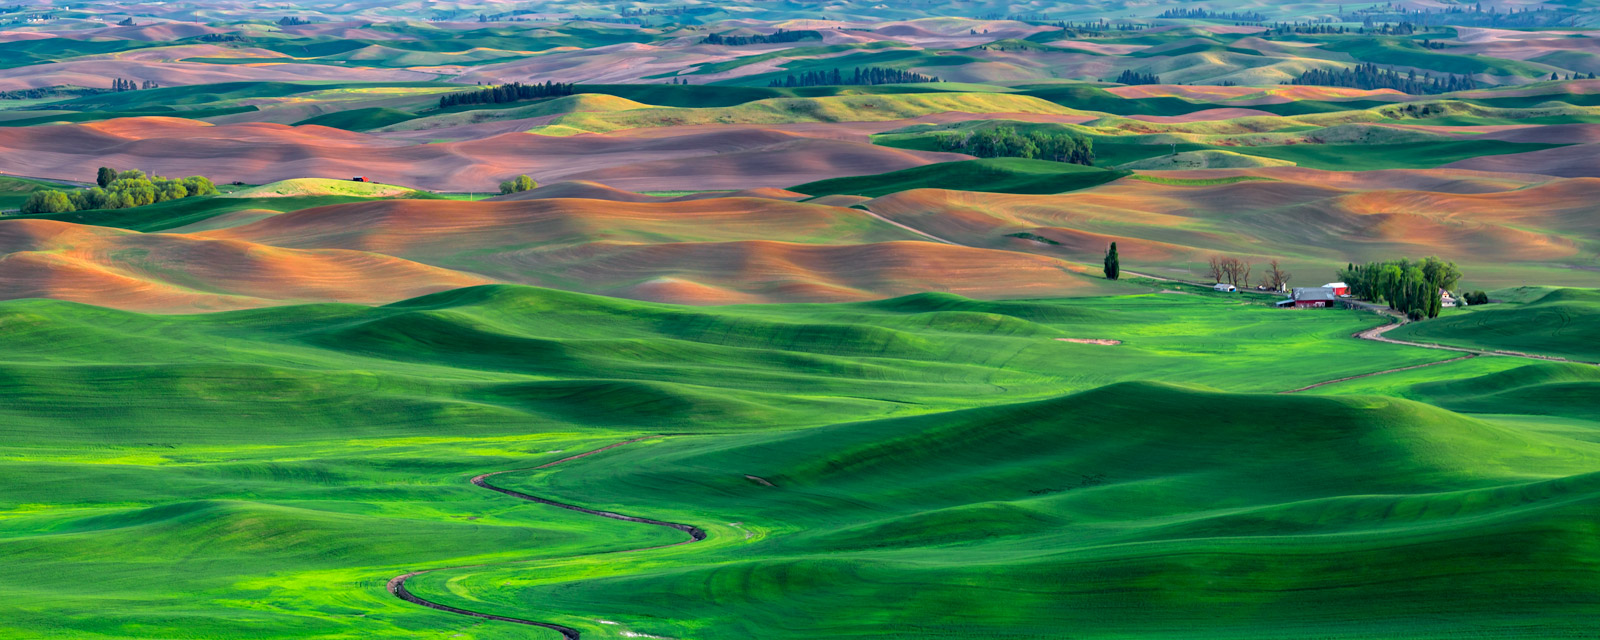 Washington, Palouse, field, green, farm, Spring, photo